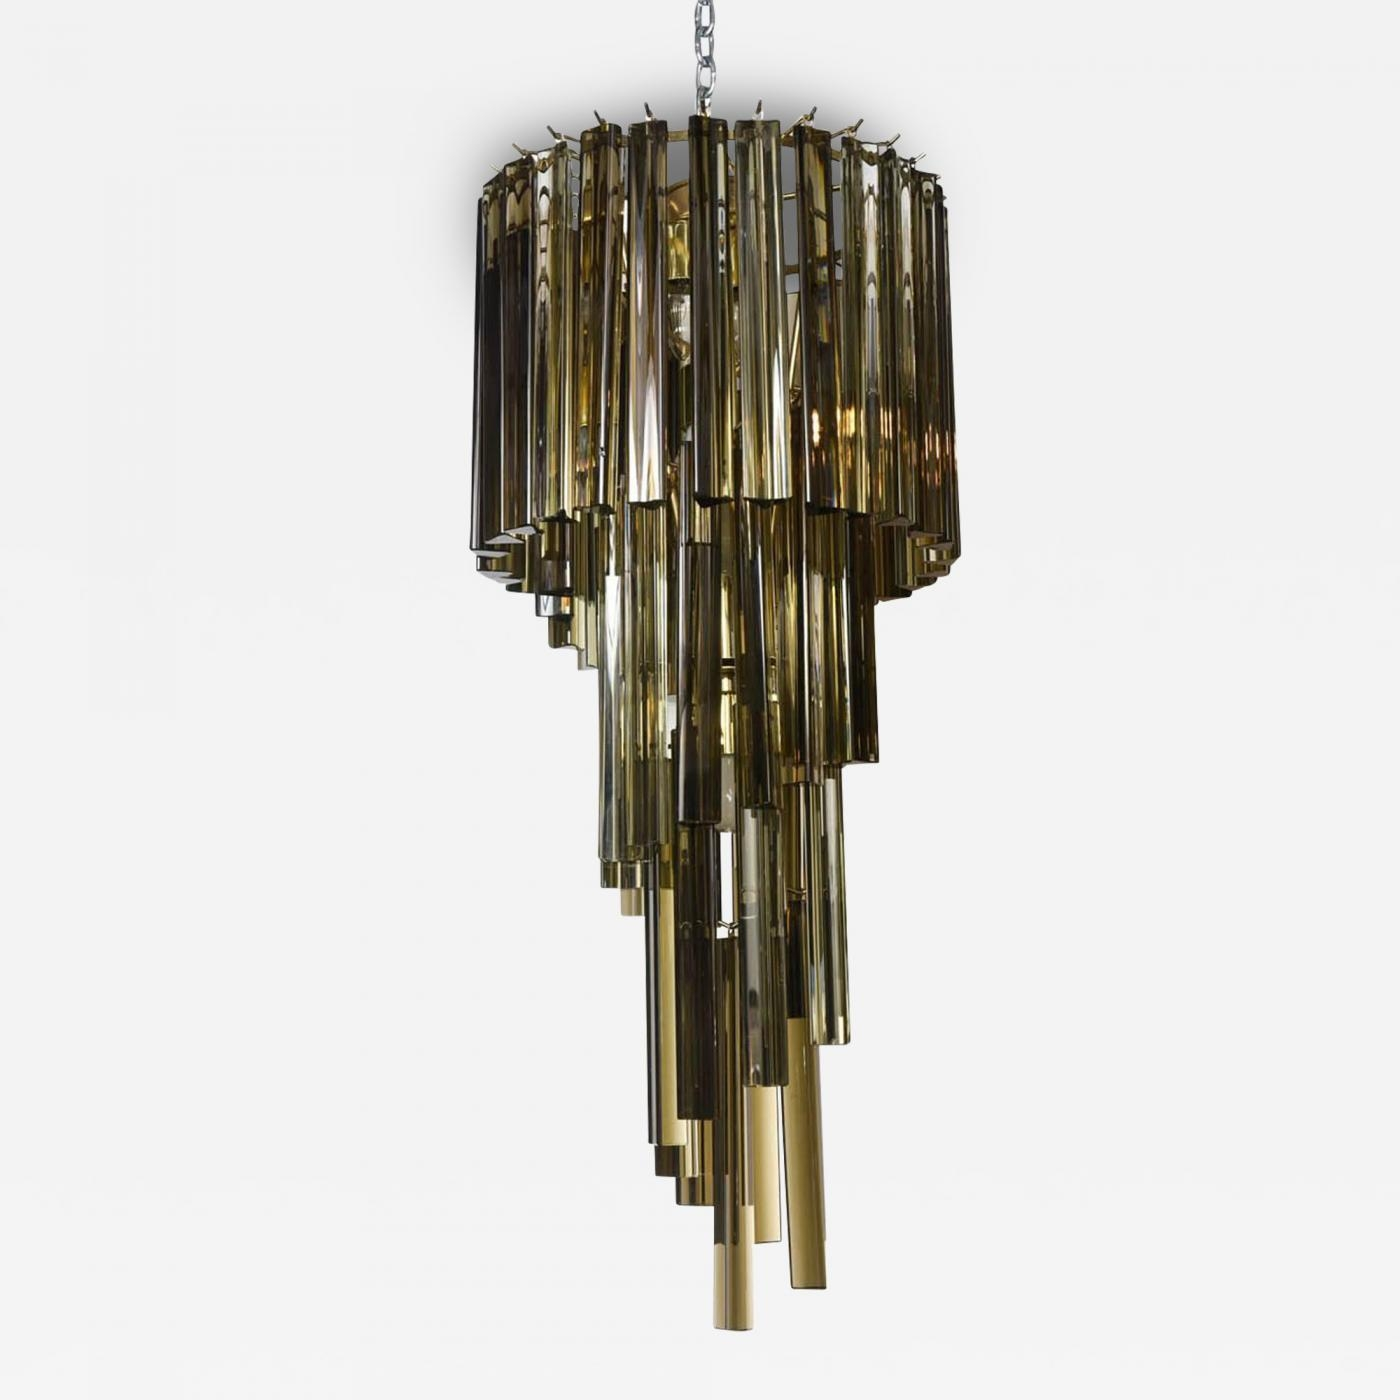 Camer Glass Rare Vintage Smoked Triedri Crystal Spiral Chandelier With Smoked Glass Chandelier (Image 3 of 15)